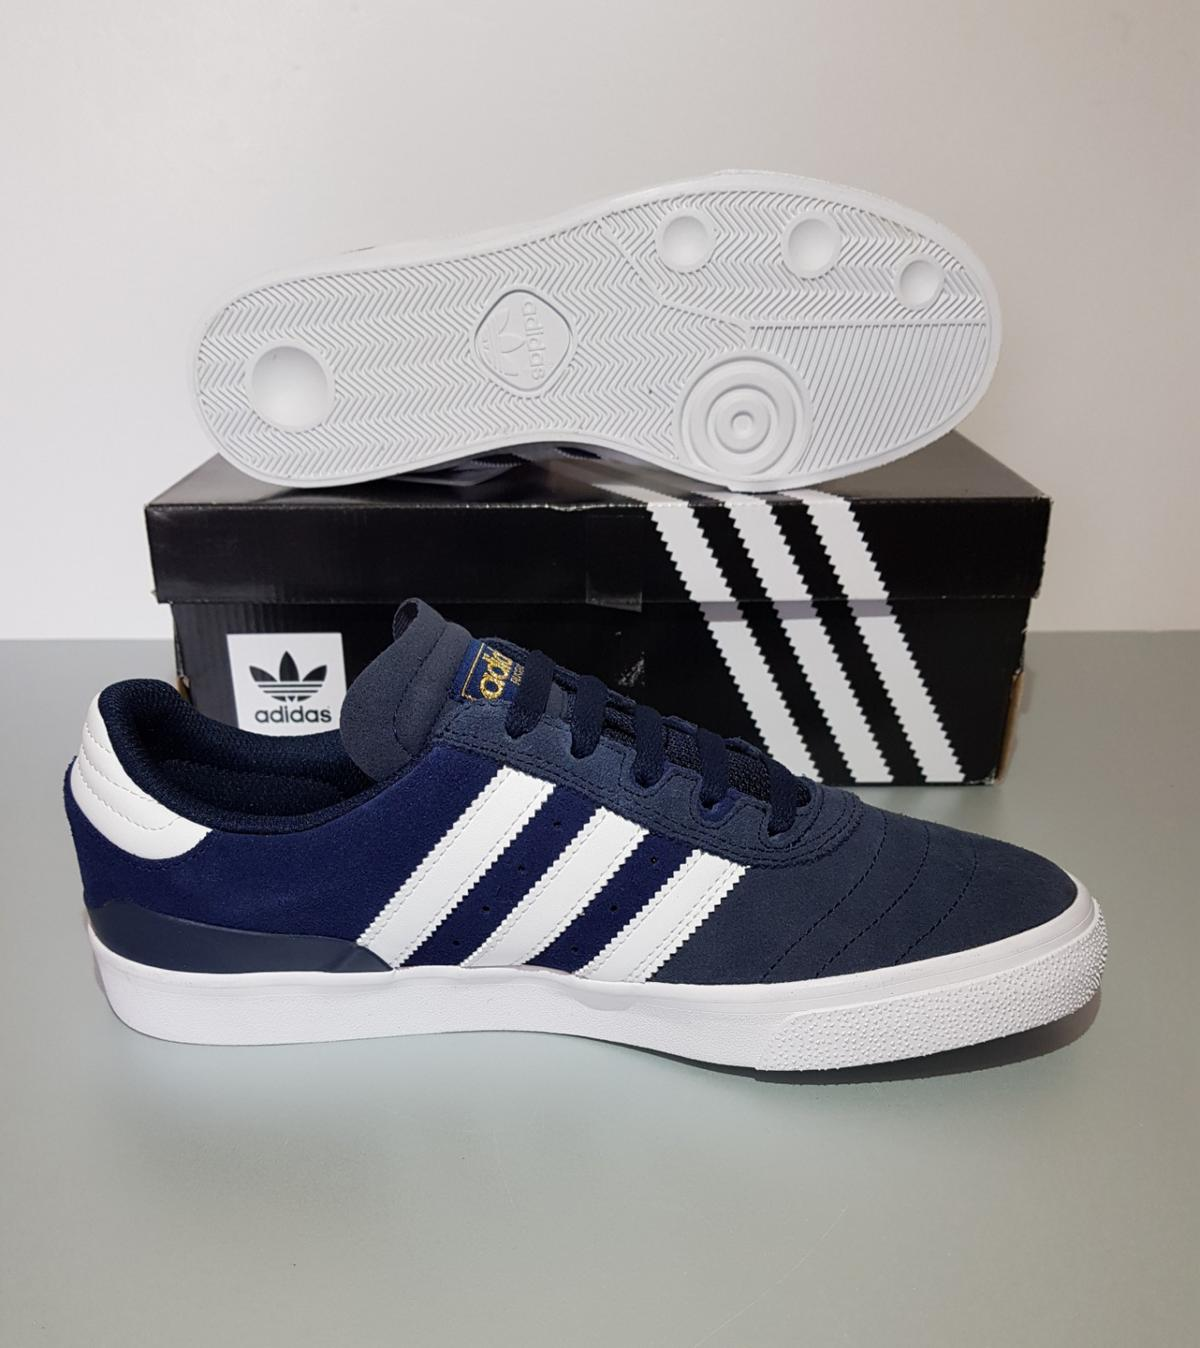 Men Adidas Busenitz Vulc Trainers  Size 8.5 UK  Brand New in Box with Tags  The men's adidas Originals Busenitz Vulc shoes treat the popular skate shoes to a technical upgrade. They feature a smooth all-suede upper, comfy moulded sockliner, supportive GEOFIT™ collar cushioning and a new Vector Traction outsole with a grippier tread design.  Postage costs are £4.10 Royal mail 2nd class recorded delivery. Collection in person is more than welcome.  Please take a look at my other items.